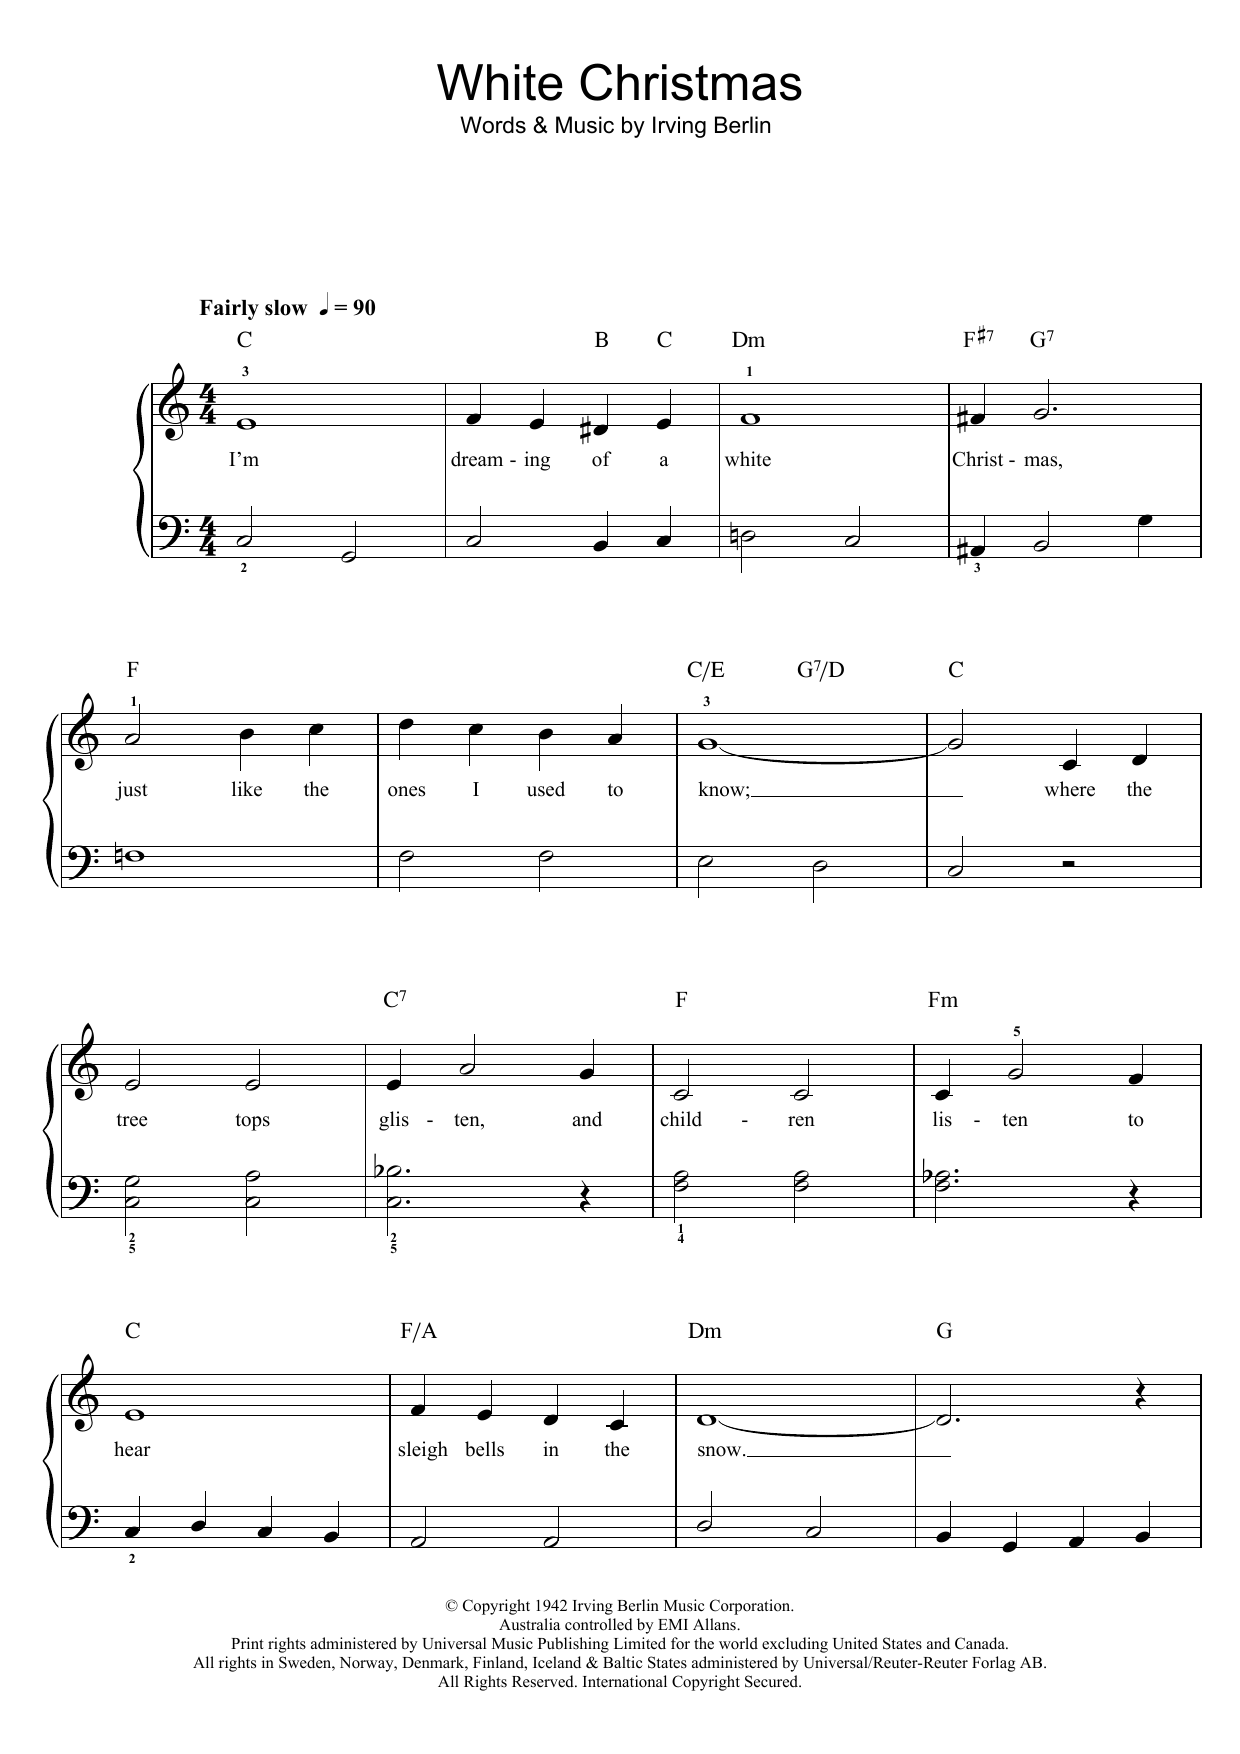 White Christmas Sheet Music by Eric Clapton for Piano/Vocal/Guitar - Noteflight Marketplace